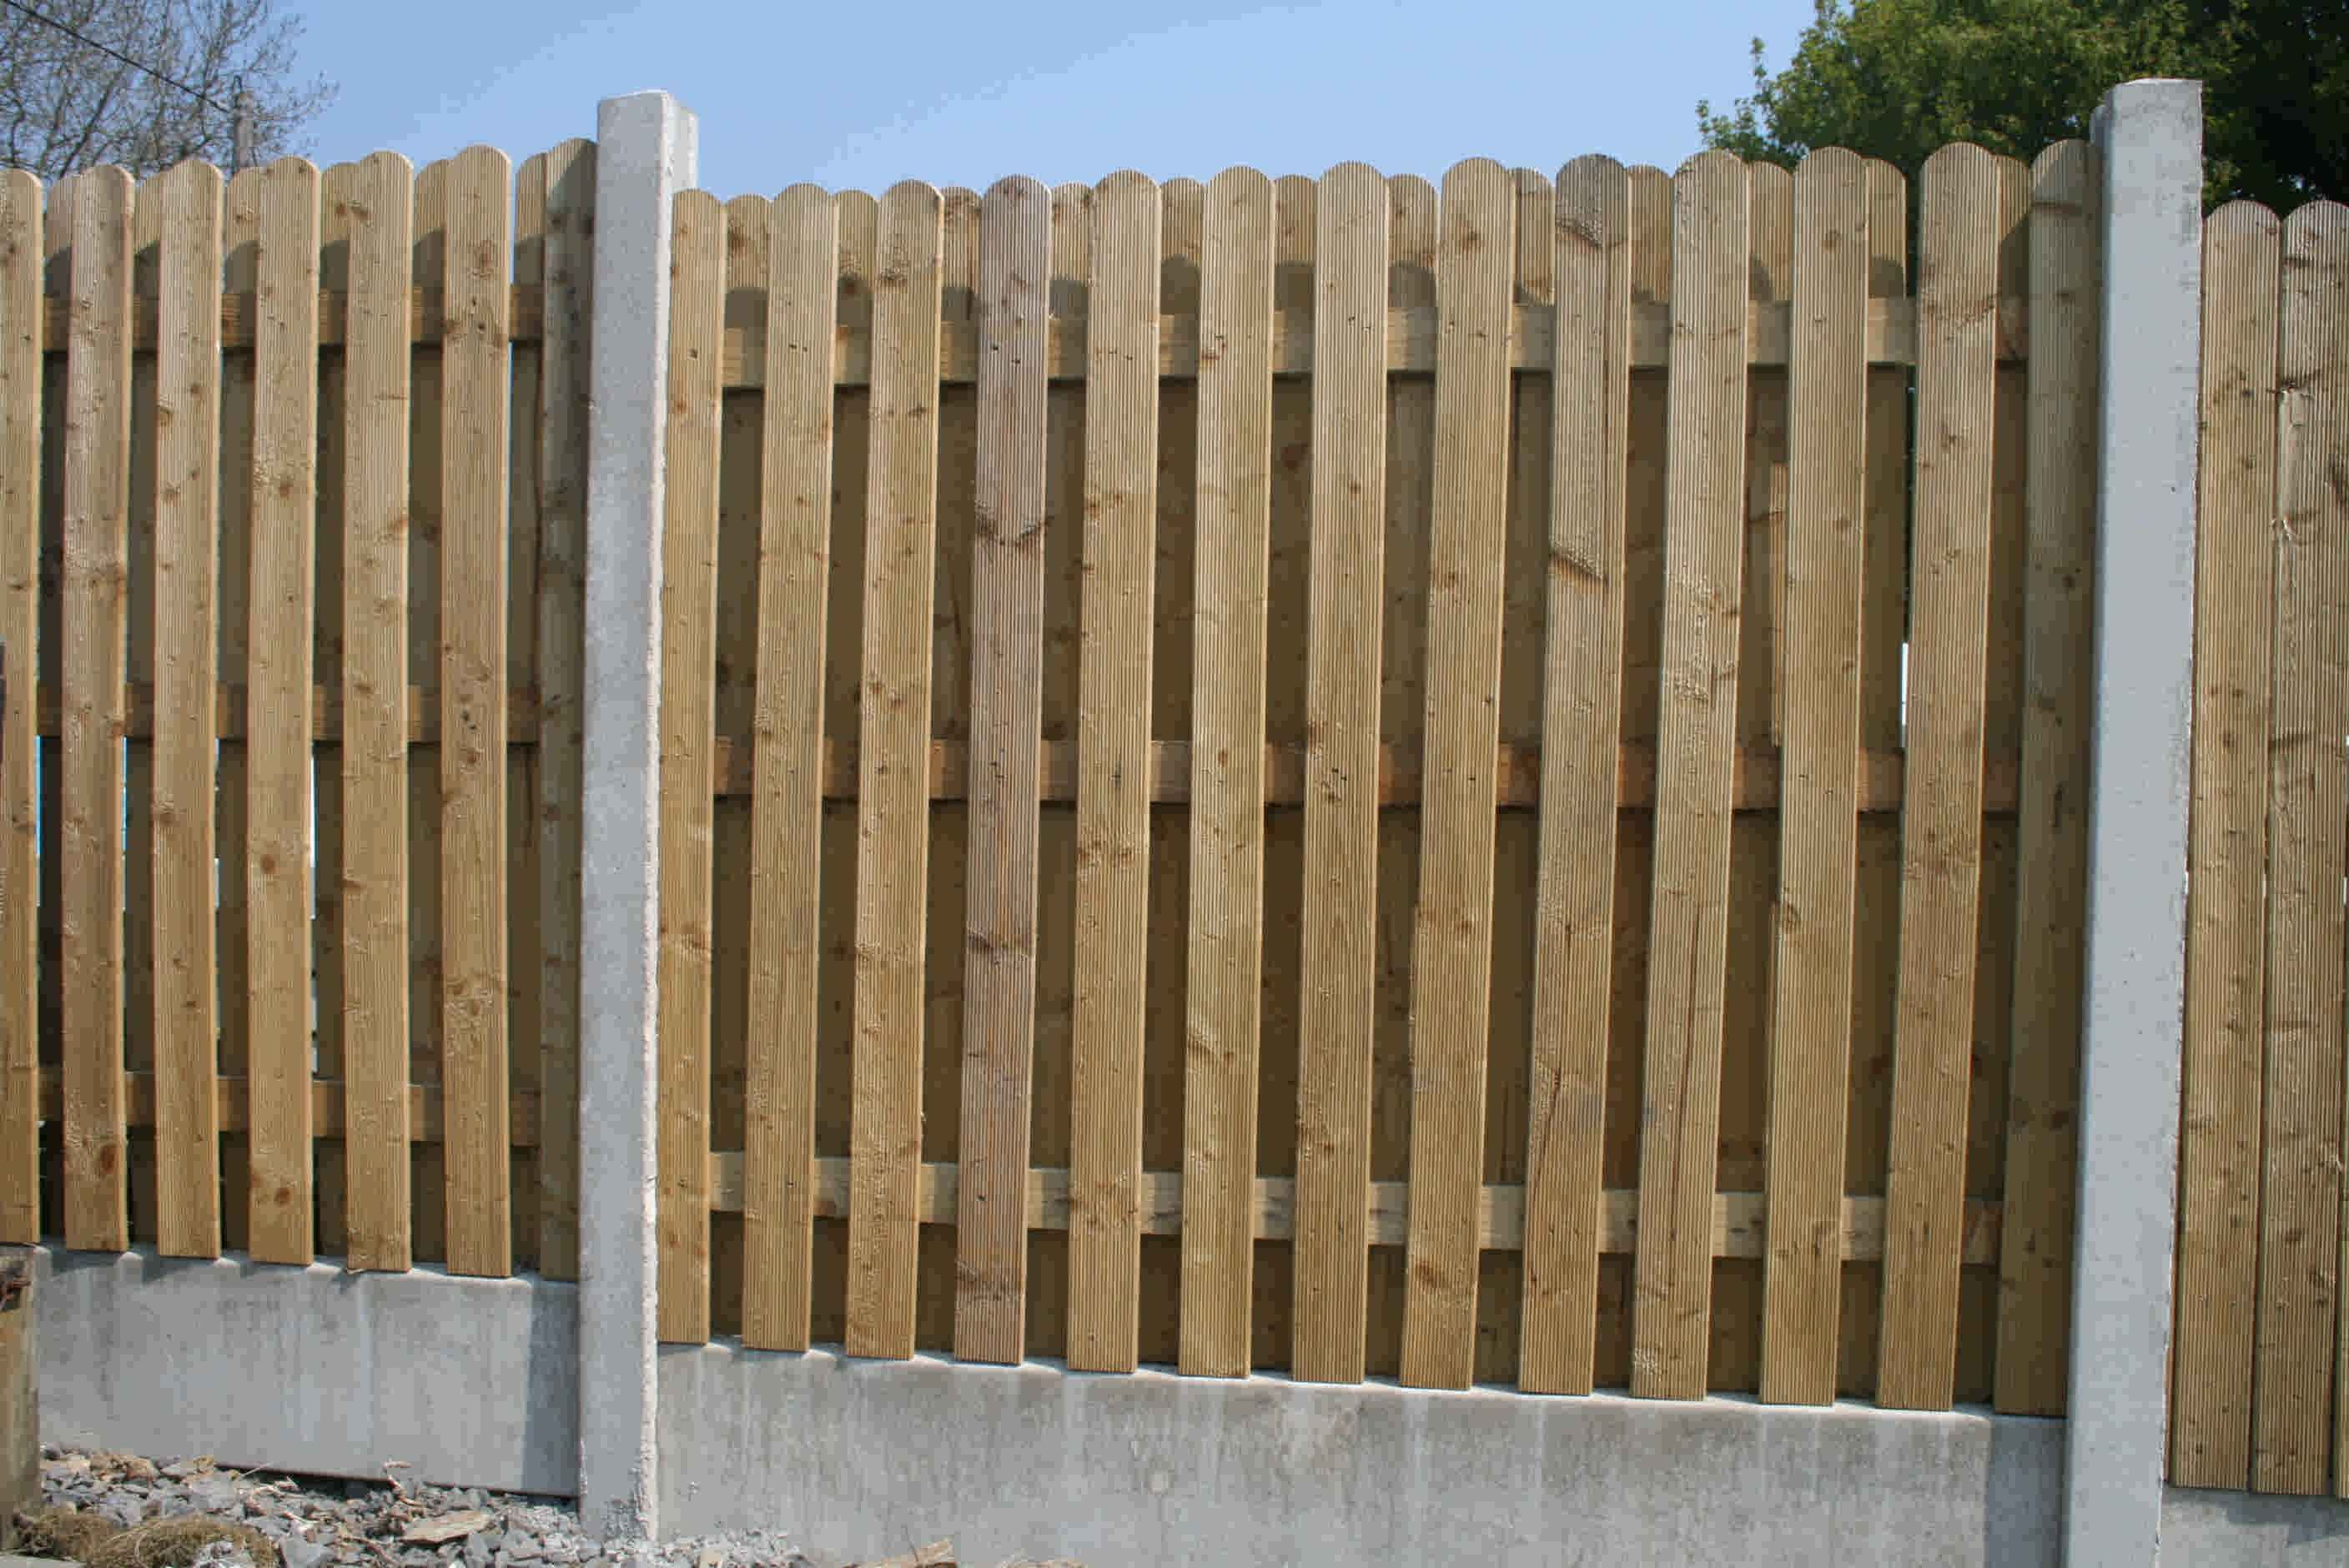 wood fence panels for sale. Wood Fence Panels Sale | Double Side Rib Picket 2 Inch Space.2 For V